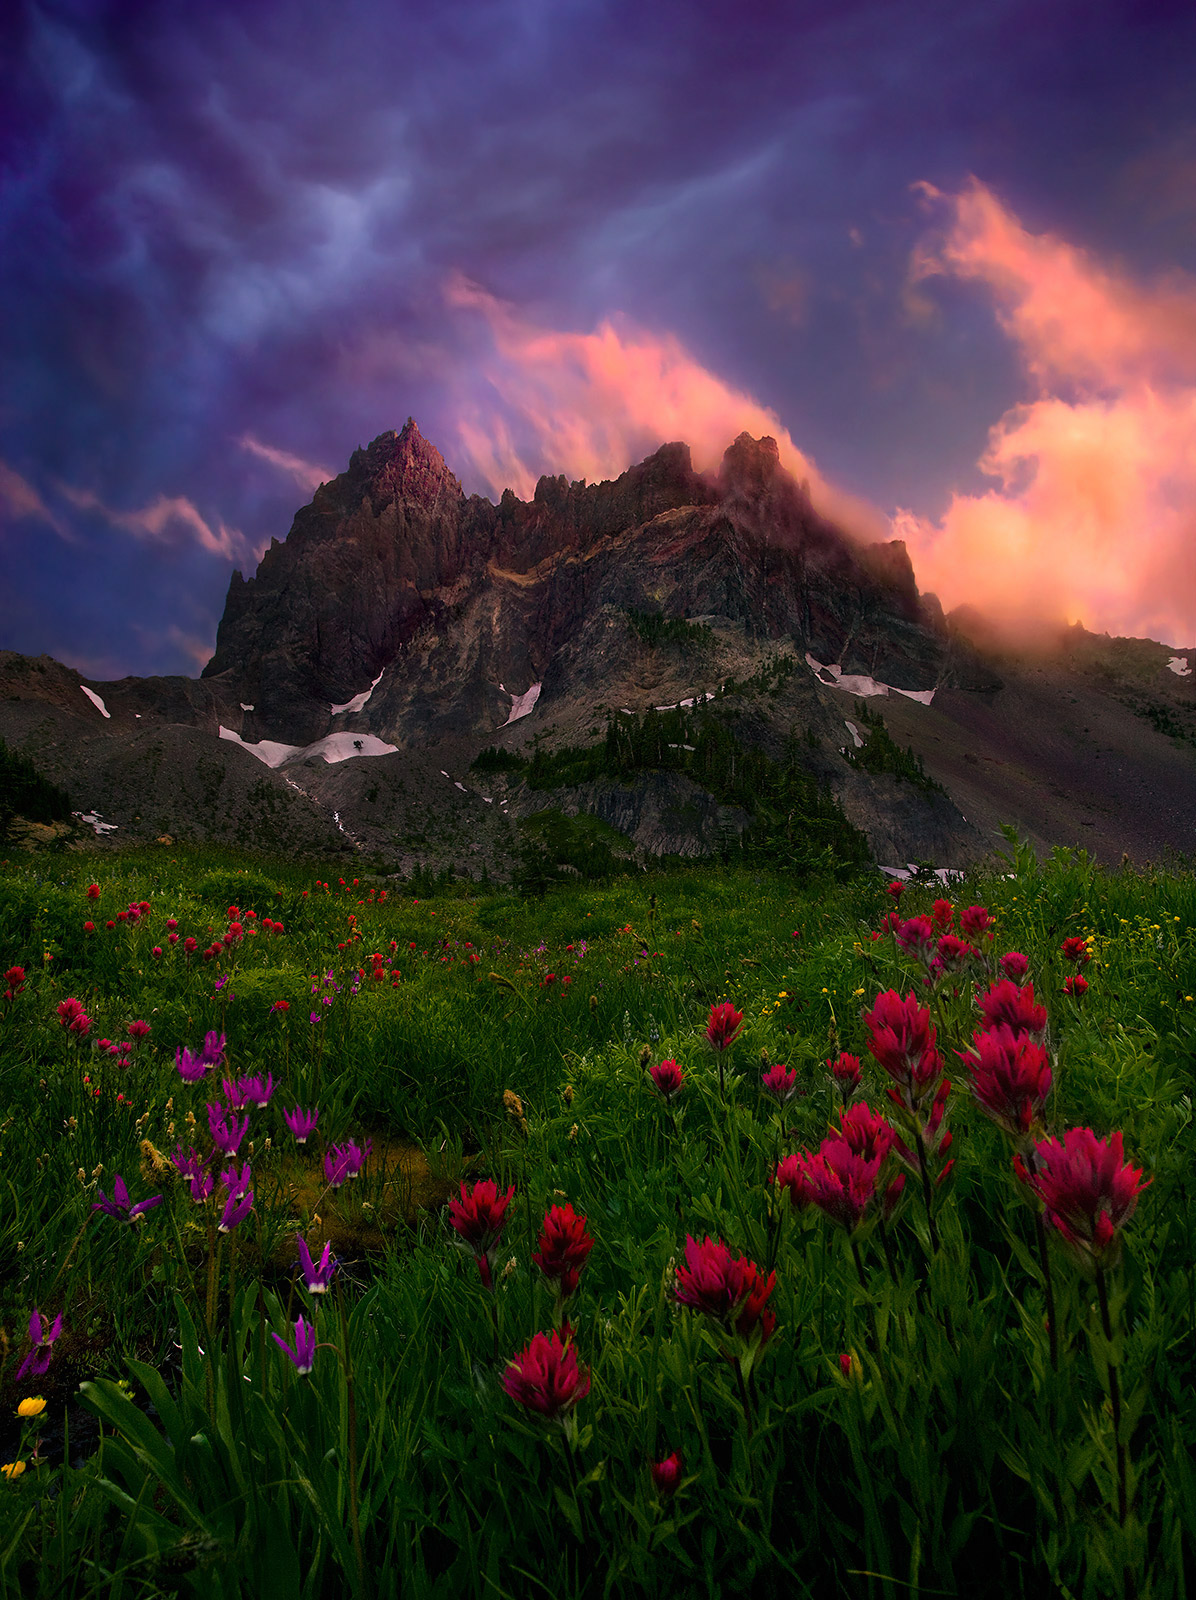 An amazing sunset show over rugged peaks in Oregon's Cascade Range.